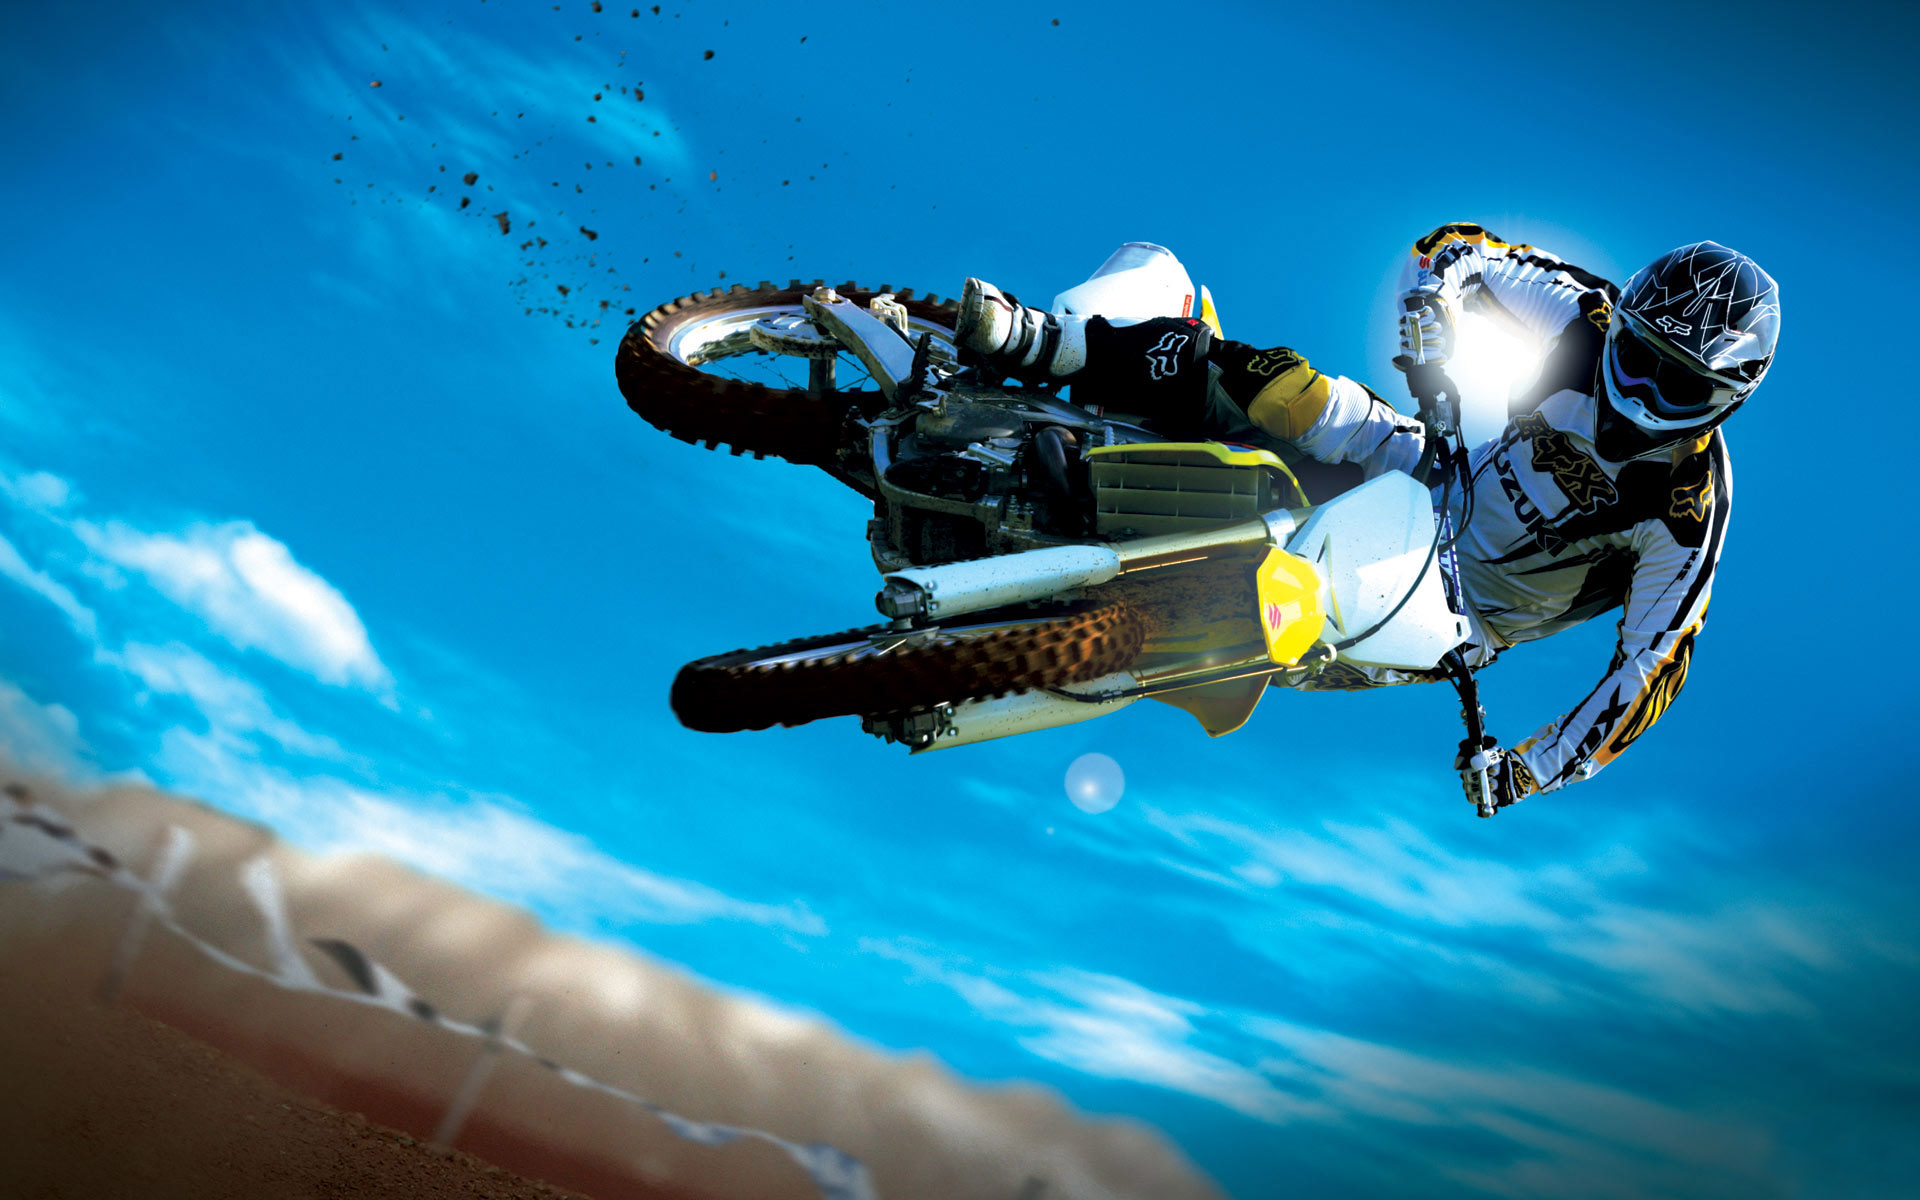 Amazing Motocross Bike Stunt 585.2 Kb